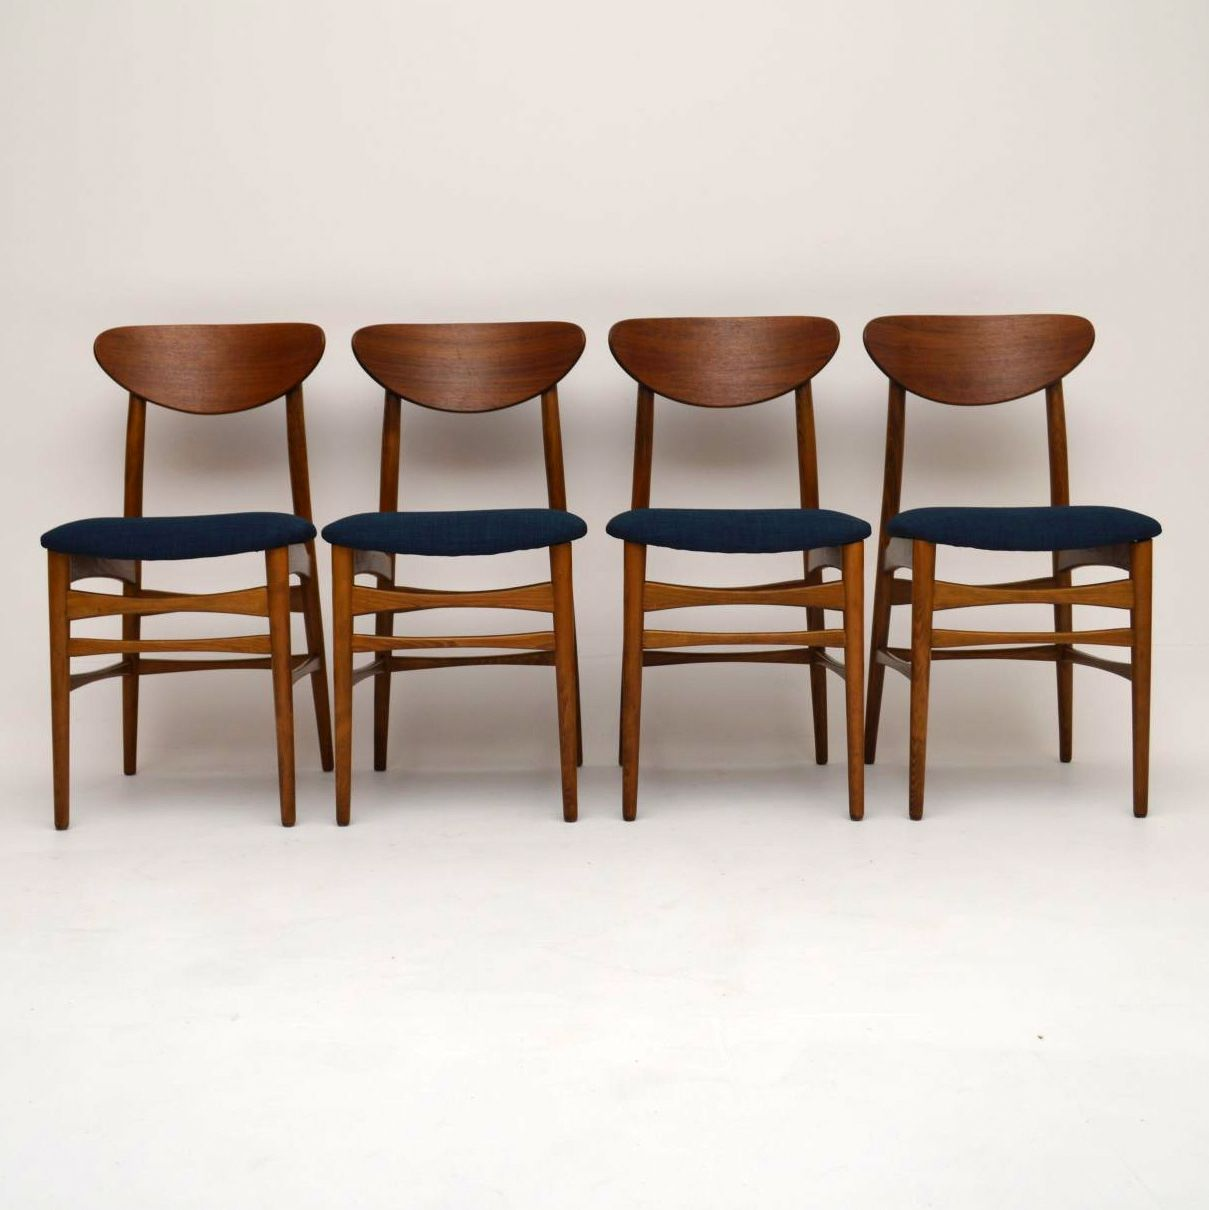 Set of 4 Danish Walnut Retro Dining Chairs Vintage 1960's